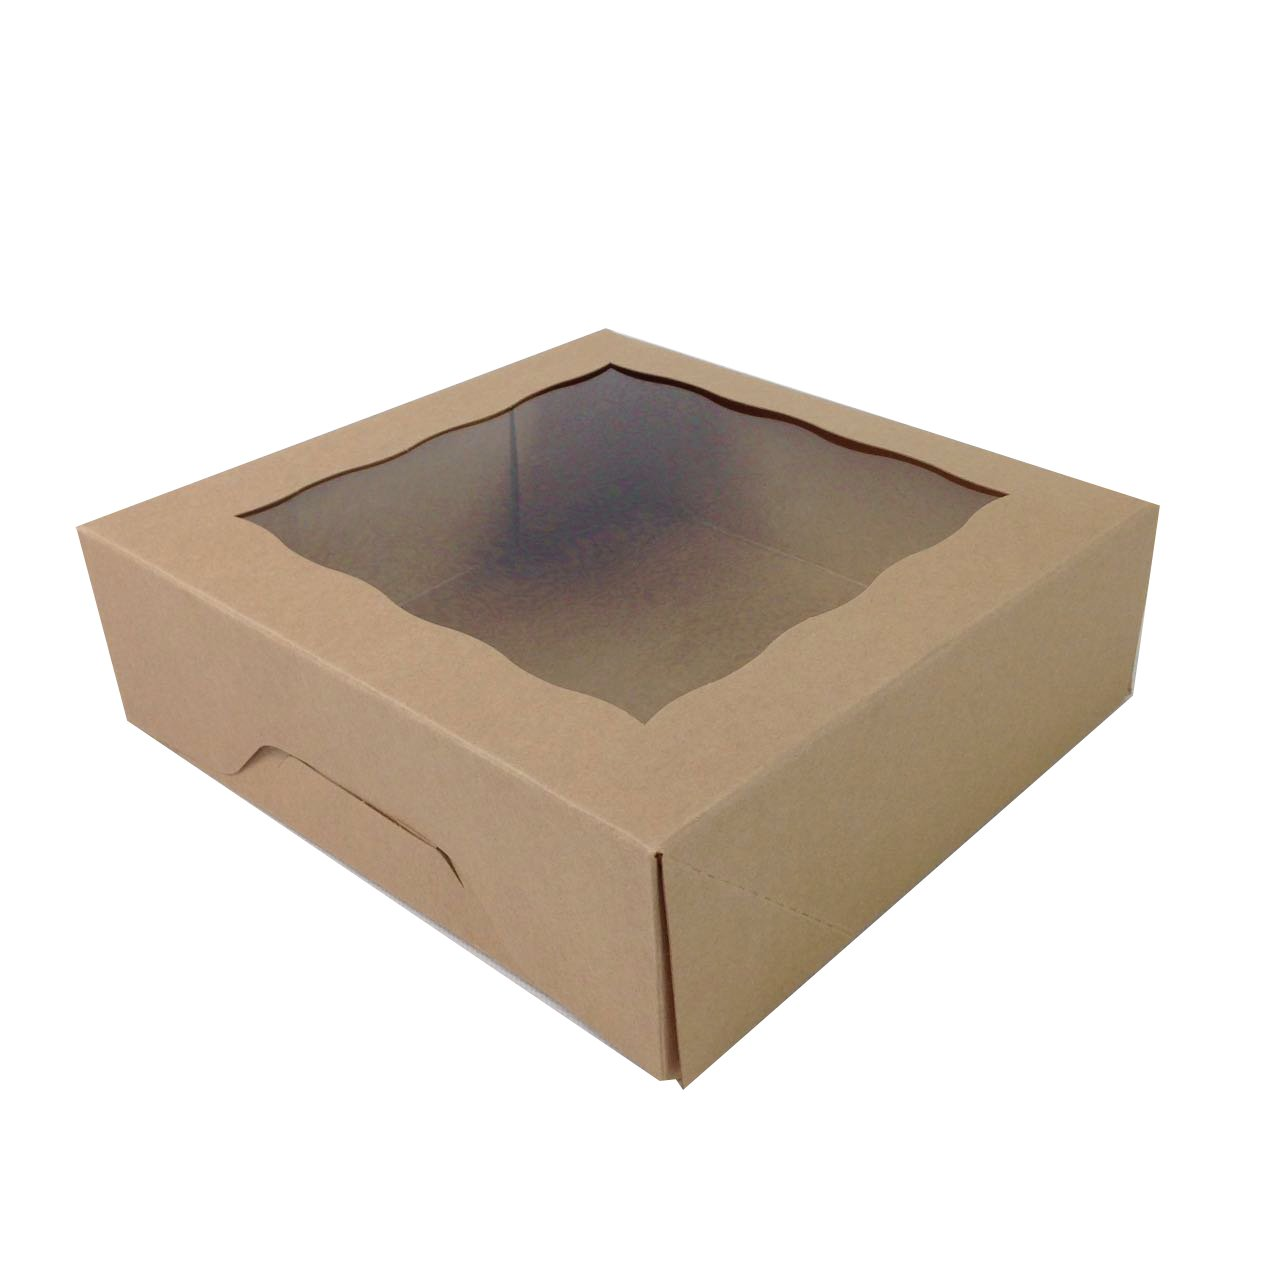 Black Cat Avenue 8'' x 8'' x 2 1/2'' Kraft Brown Food Boxes Cookie Boxes with Window Pie Pastry Container Display Bakery Boxes, 5 Count